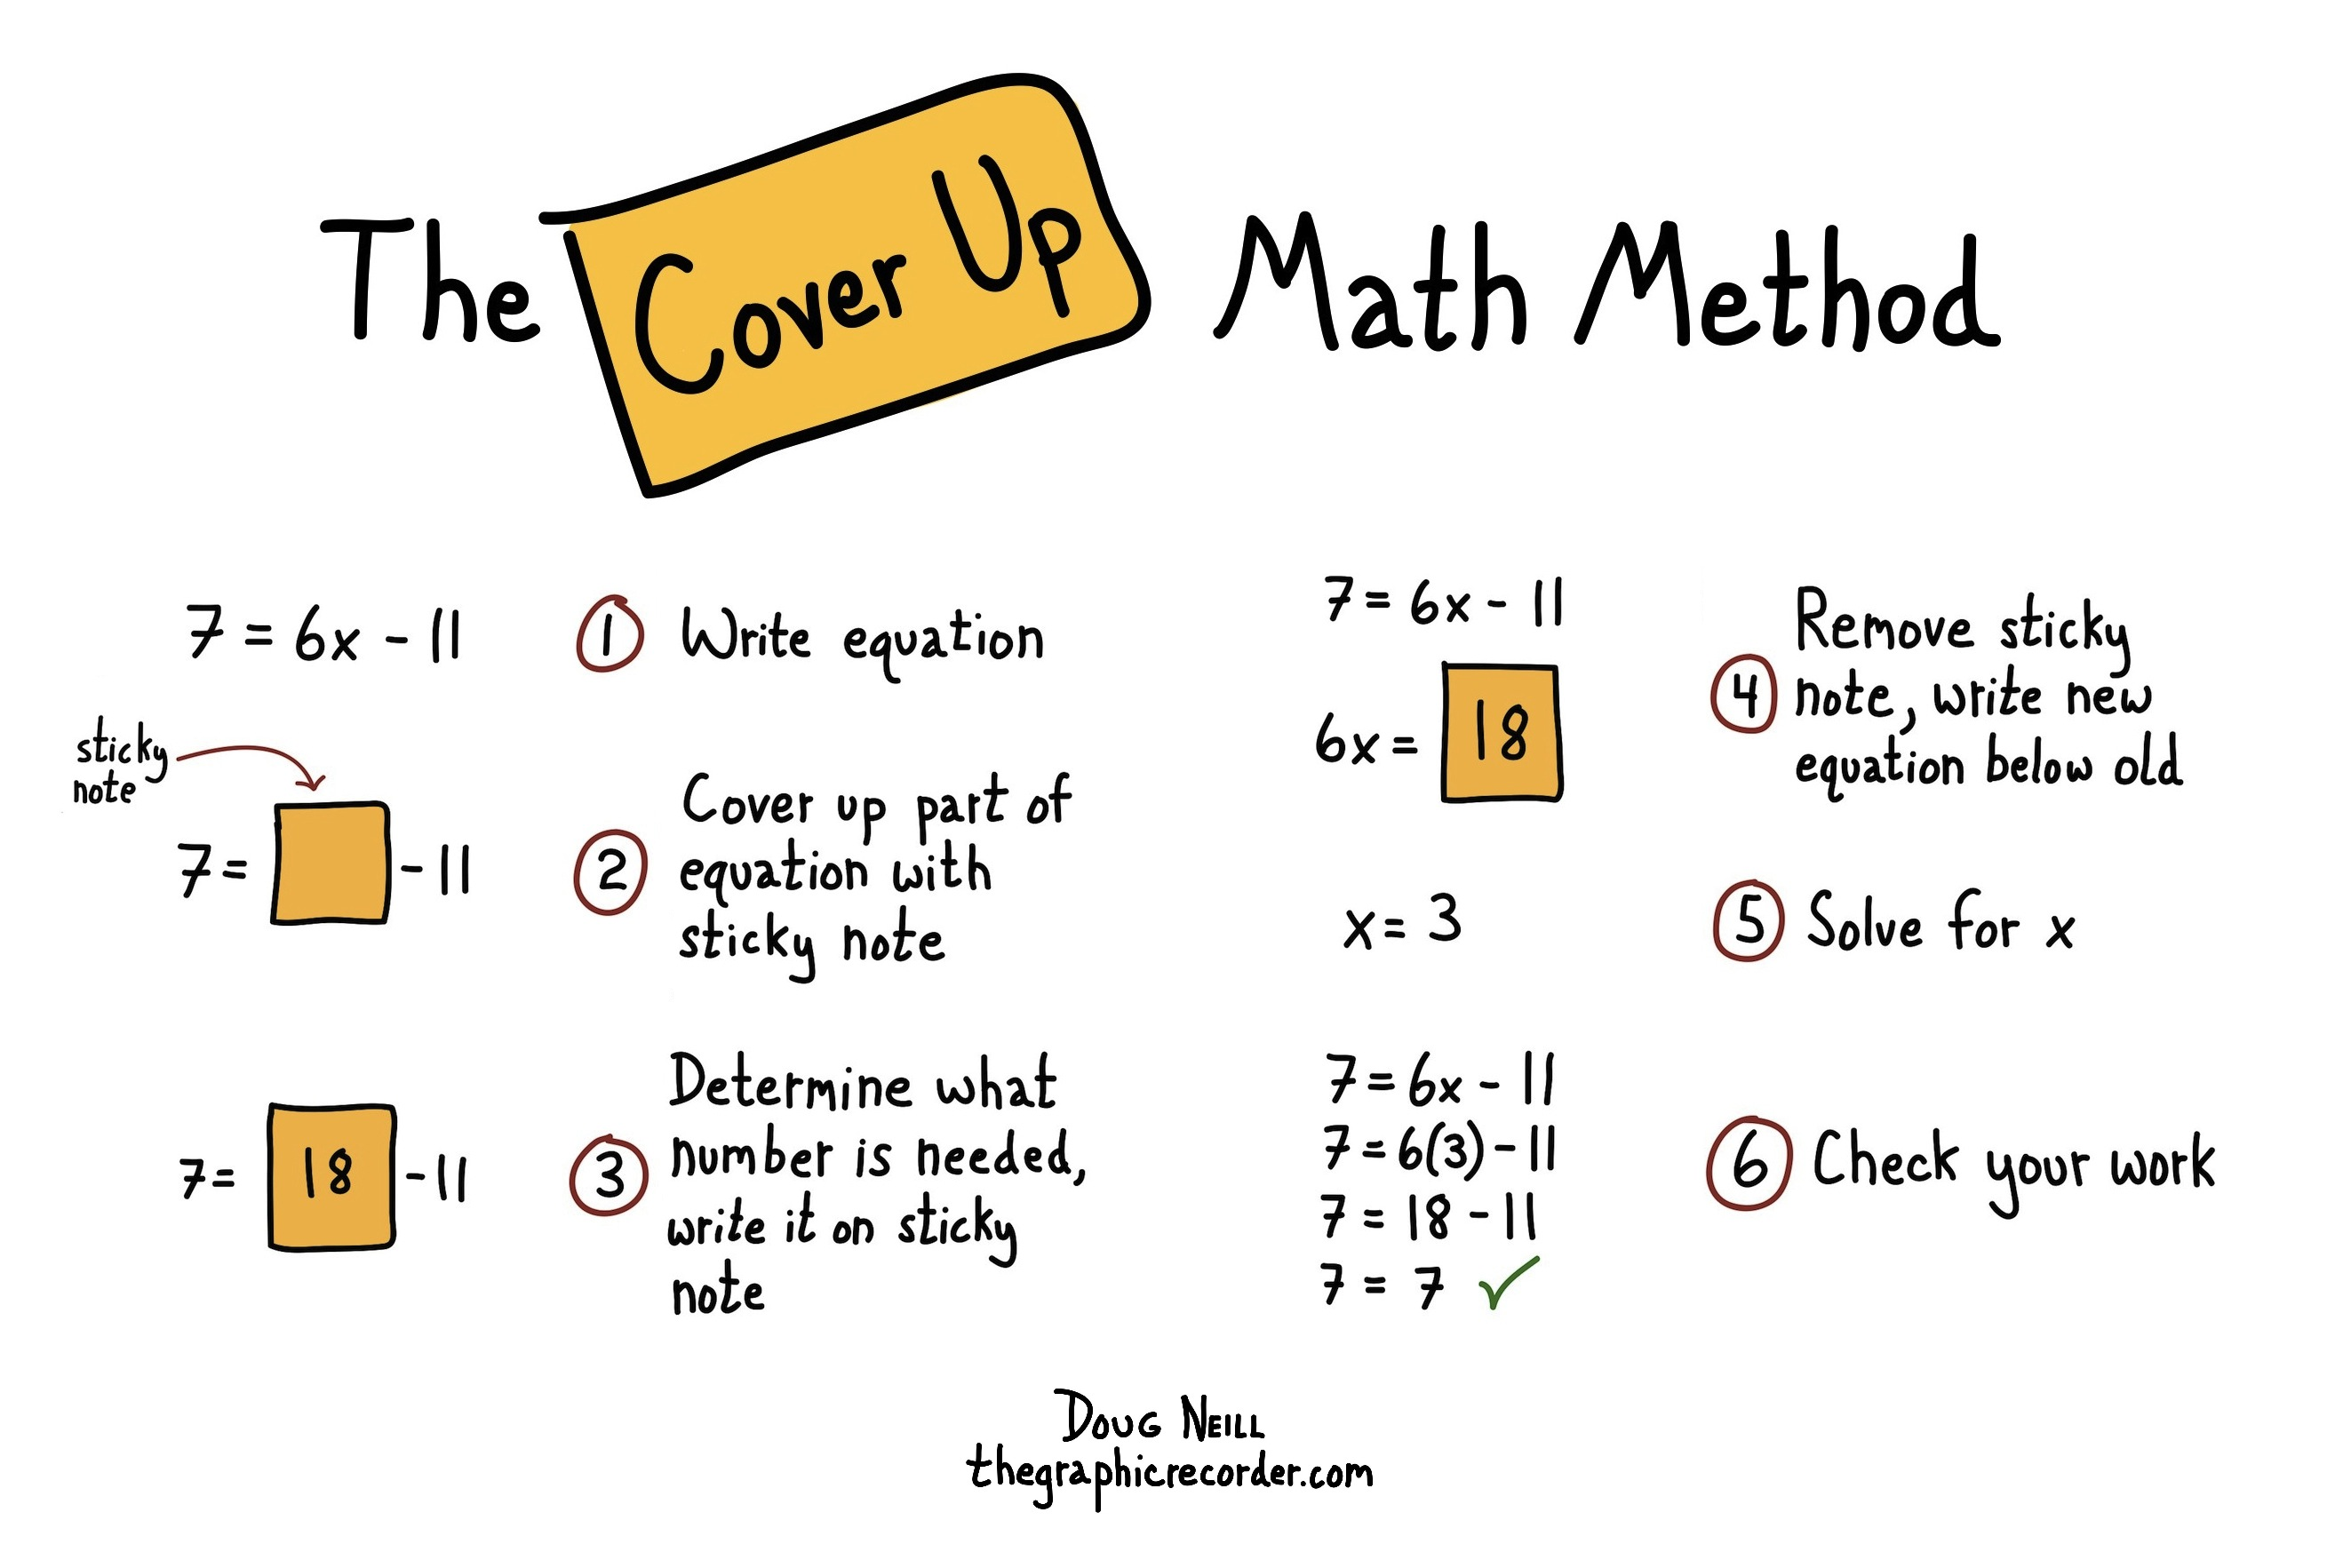 The Graphic Recorder - Doug Neill - Visual explanation of the cover up math method - sticky note